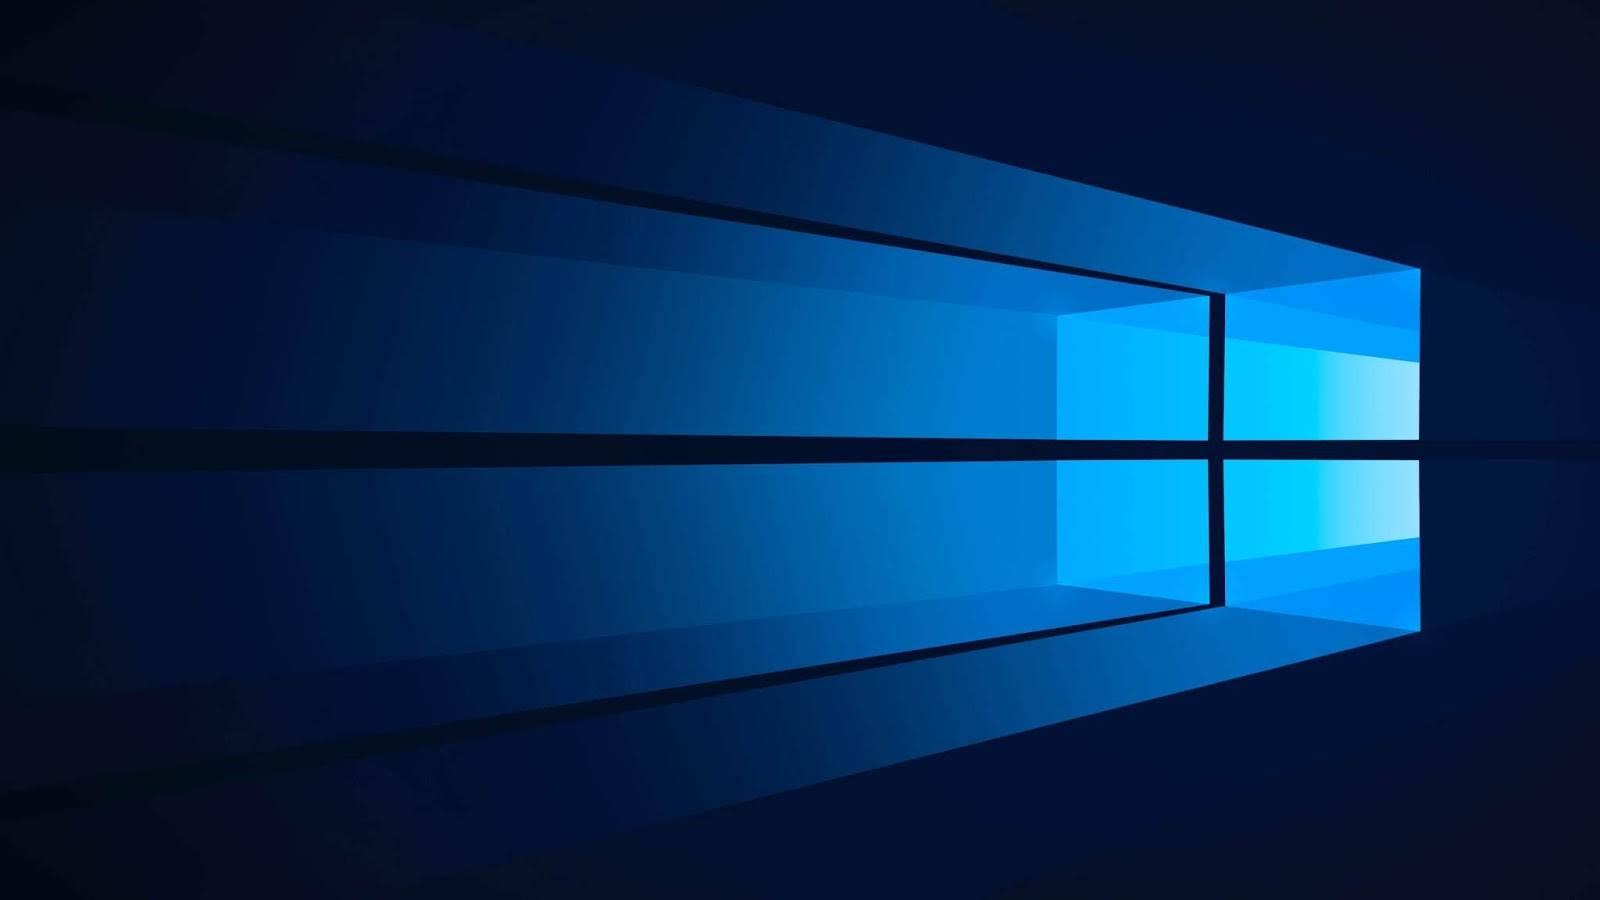 Windows 10 October 2018 Update Need Sufficient Storage Space